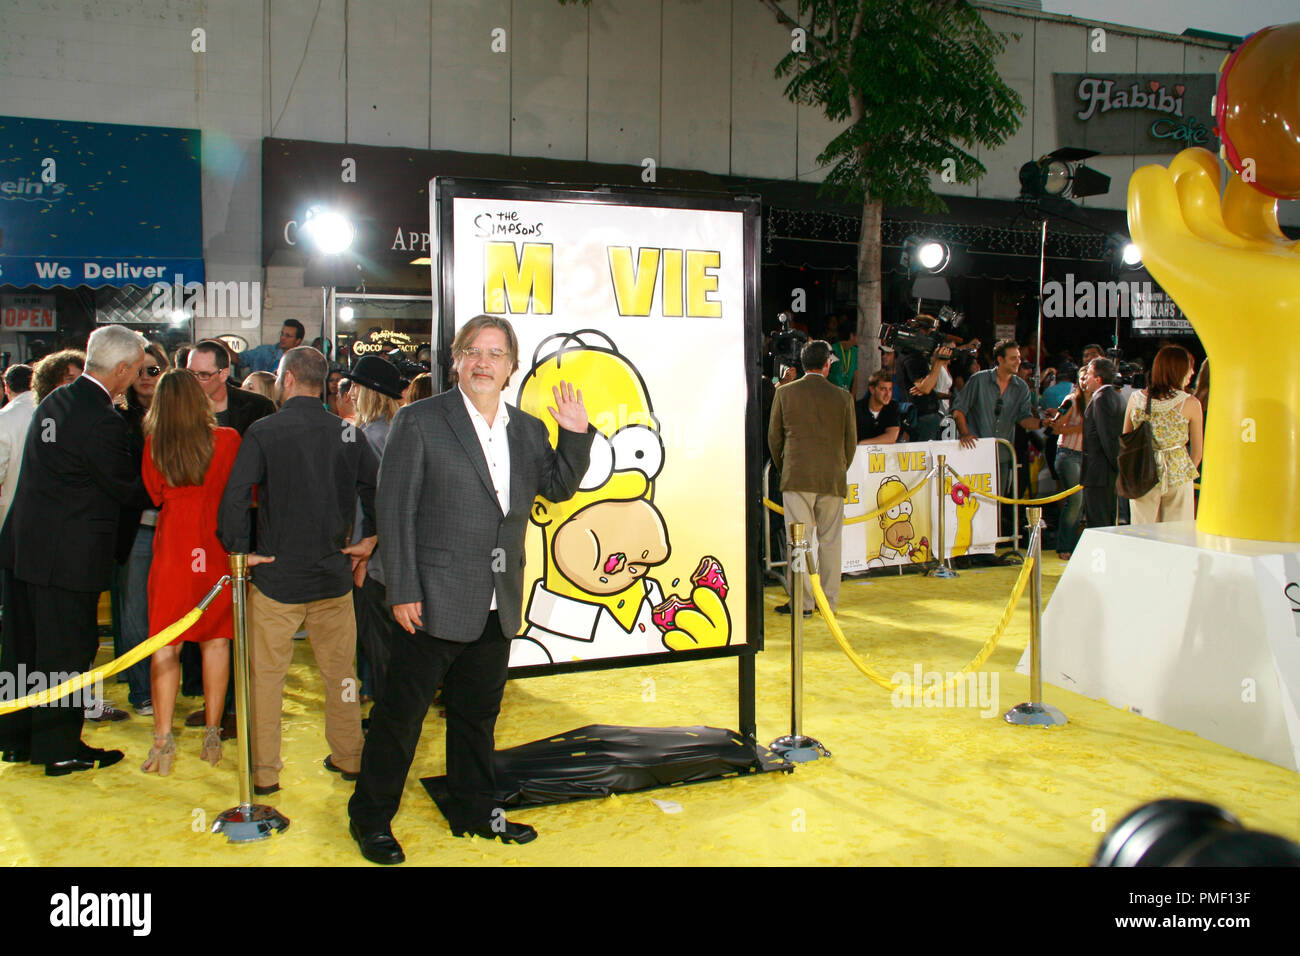 The Simpsons Movie Premiere Matt Groening 7 24 2007 Mann Bruin And Mann Village Theatre Westwood Ca 20th Century Fox Photo By Joseph Martinez File Reference 23133 0044jm For Editorial Use Only Stock Photo Alamy